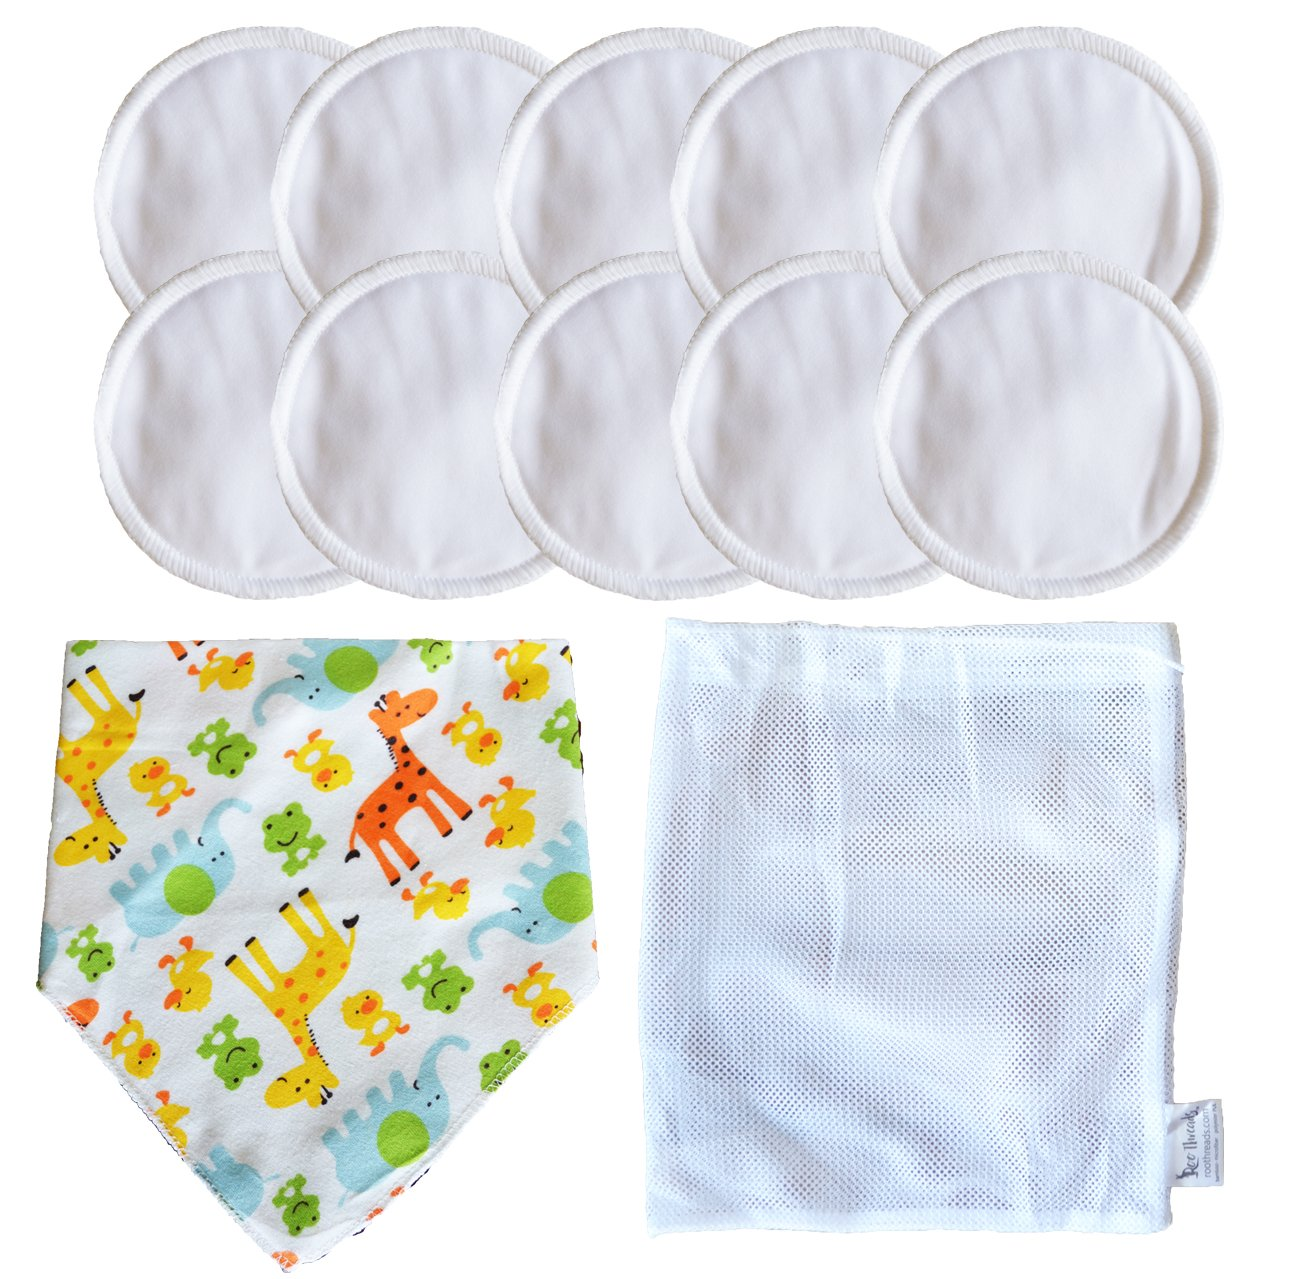 Roo Threads Reusable and Washable Bamboo Nursing Breast Pads, 10 pack